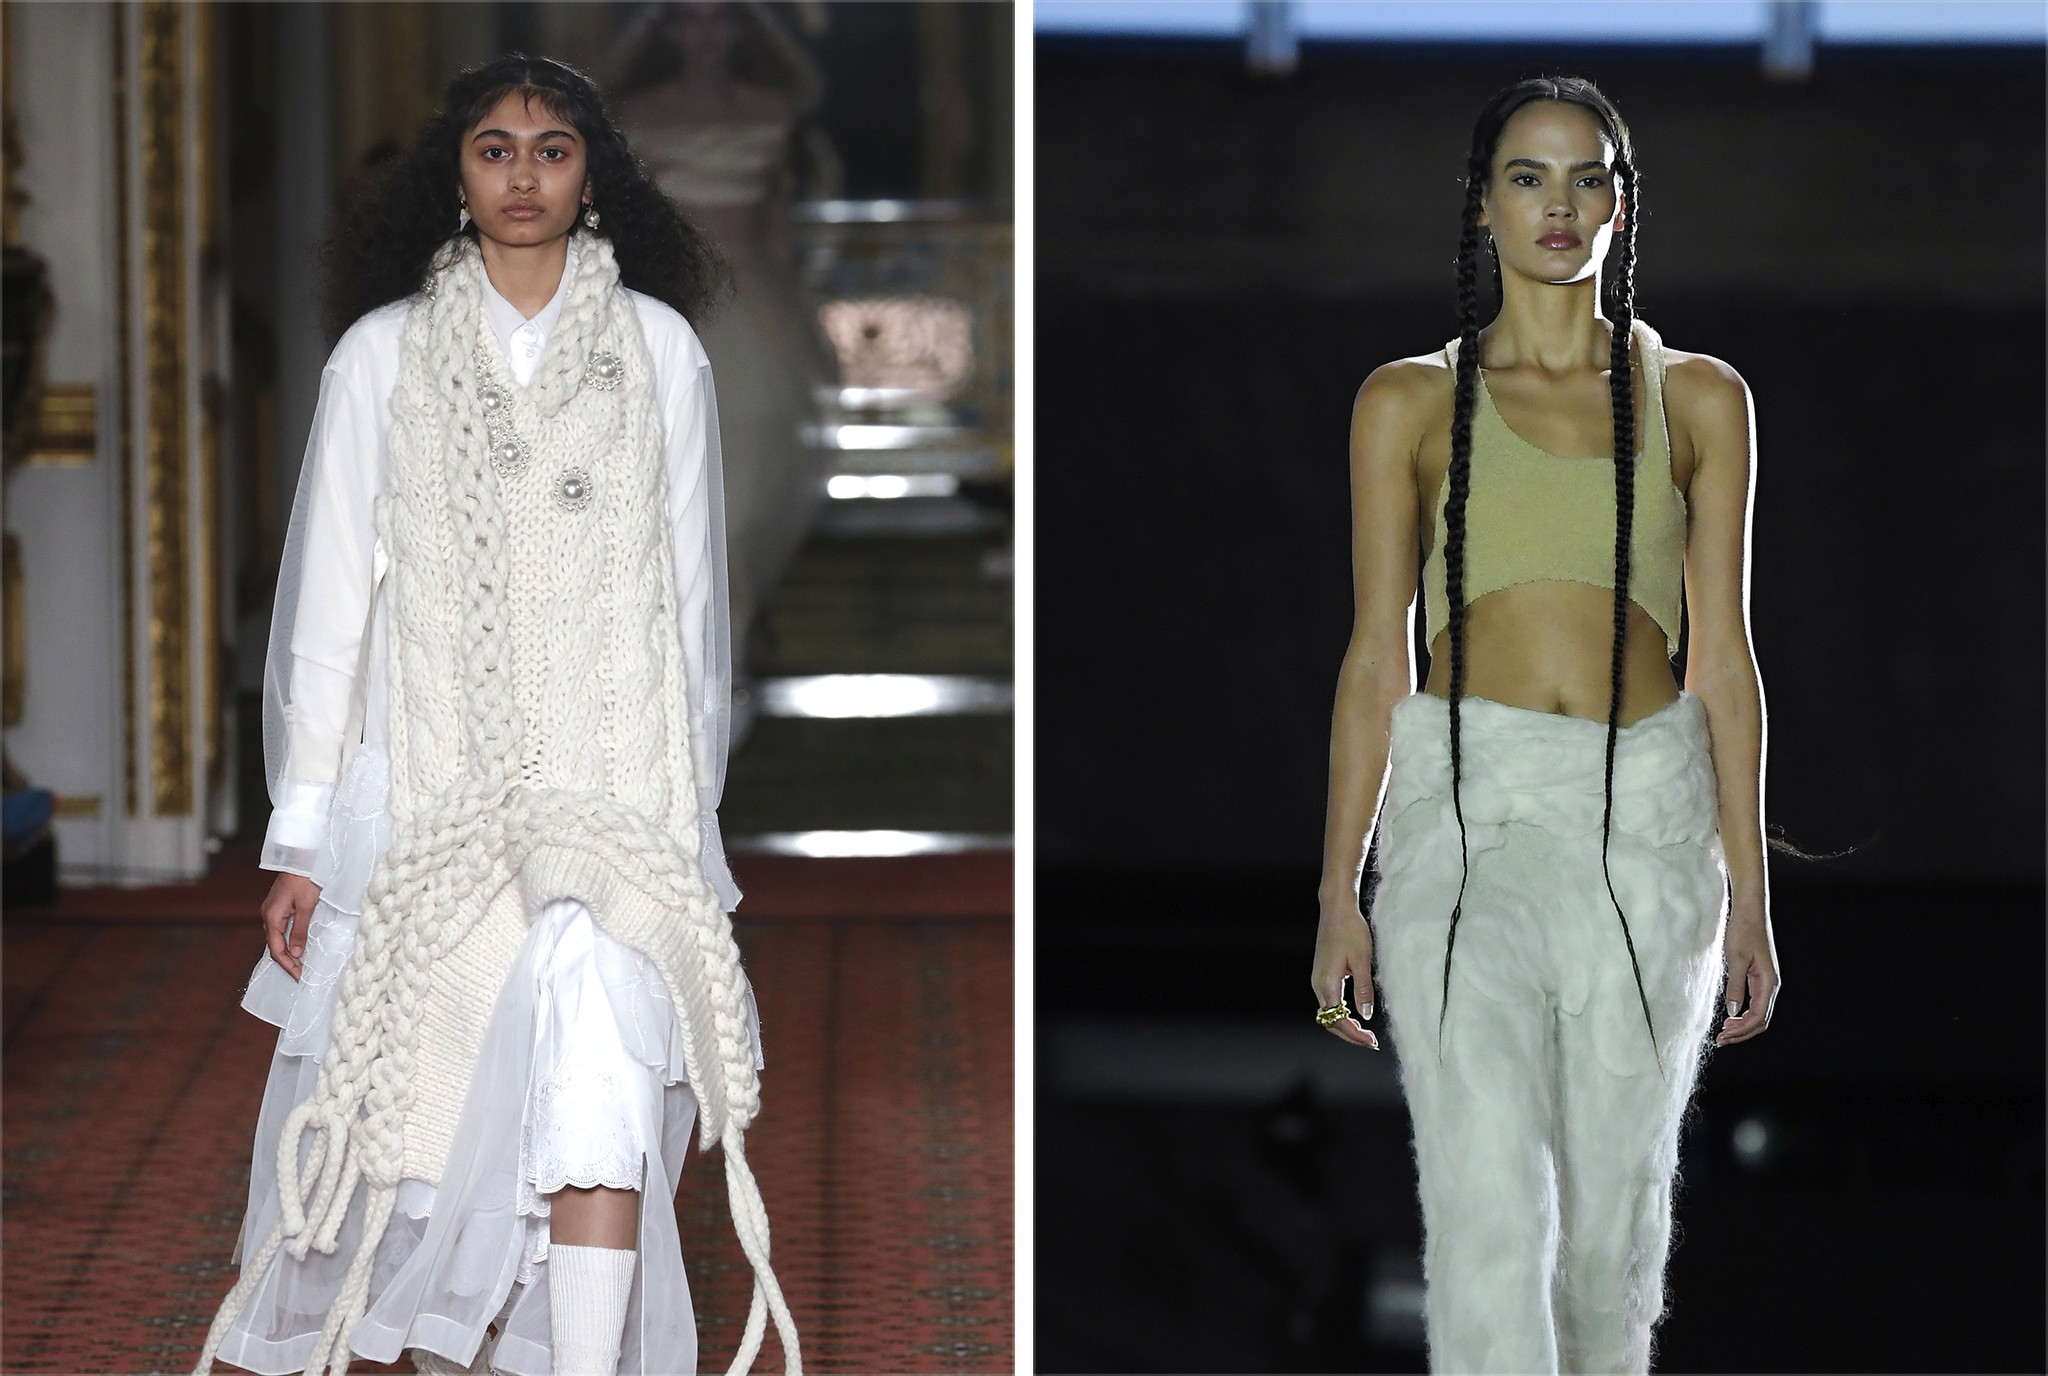 Fall looks from Yeezy and Simone Rocha.